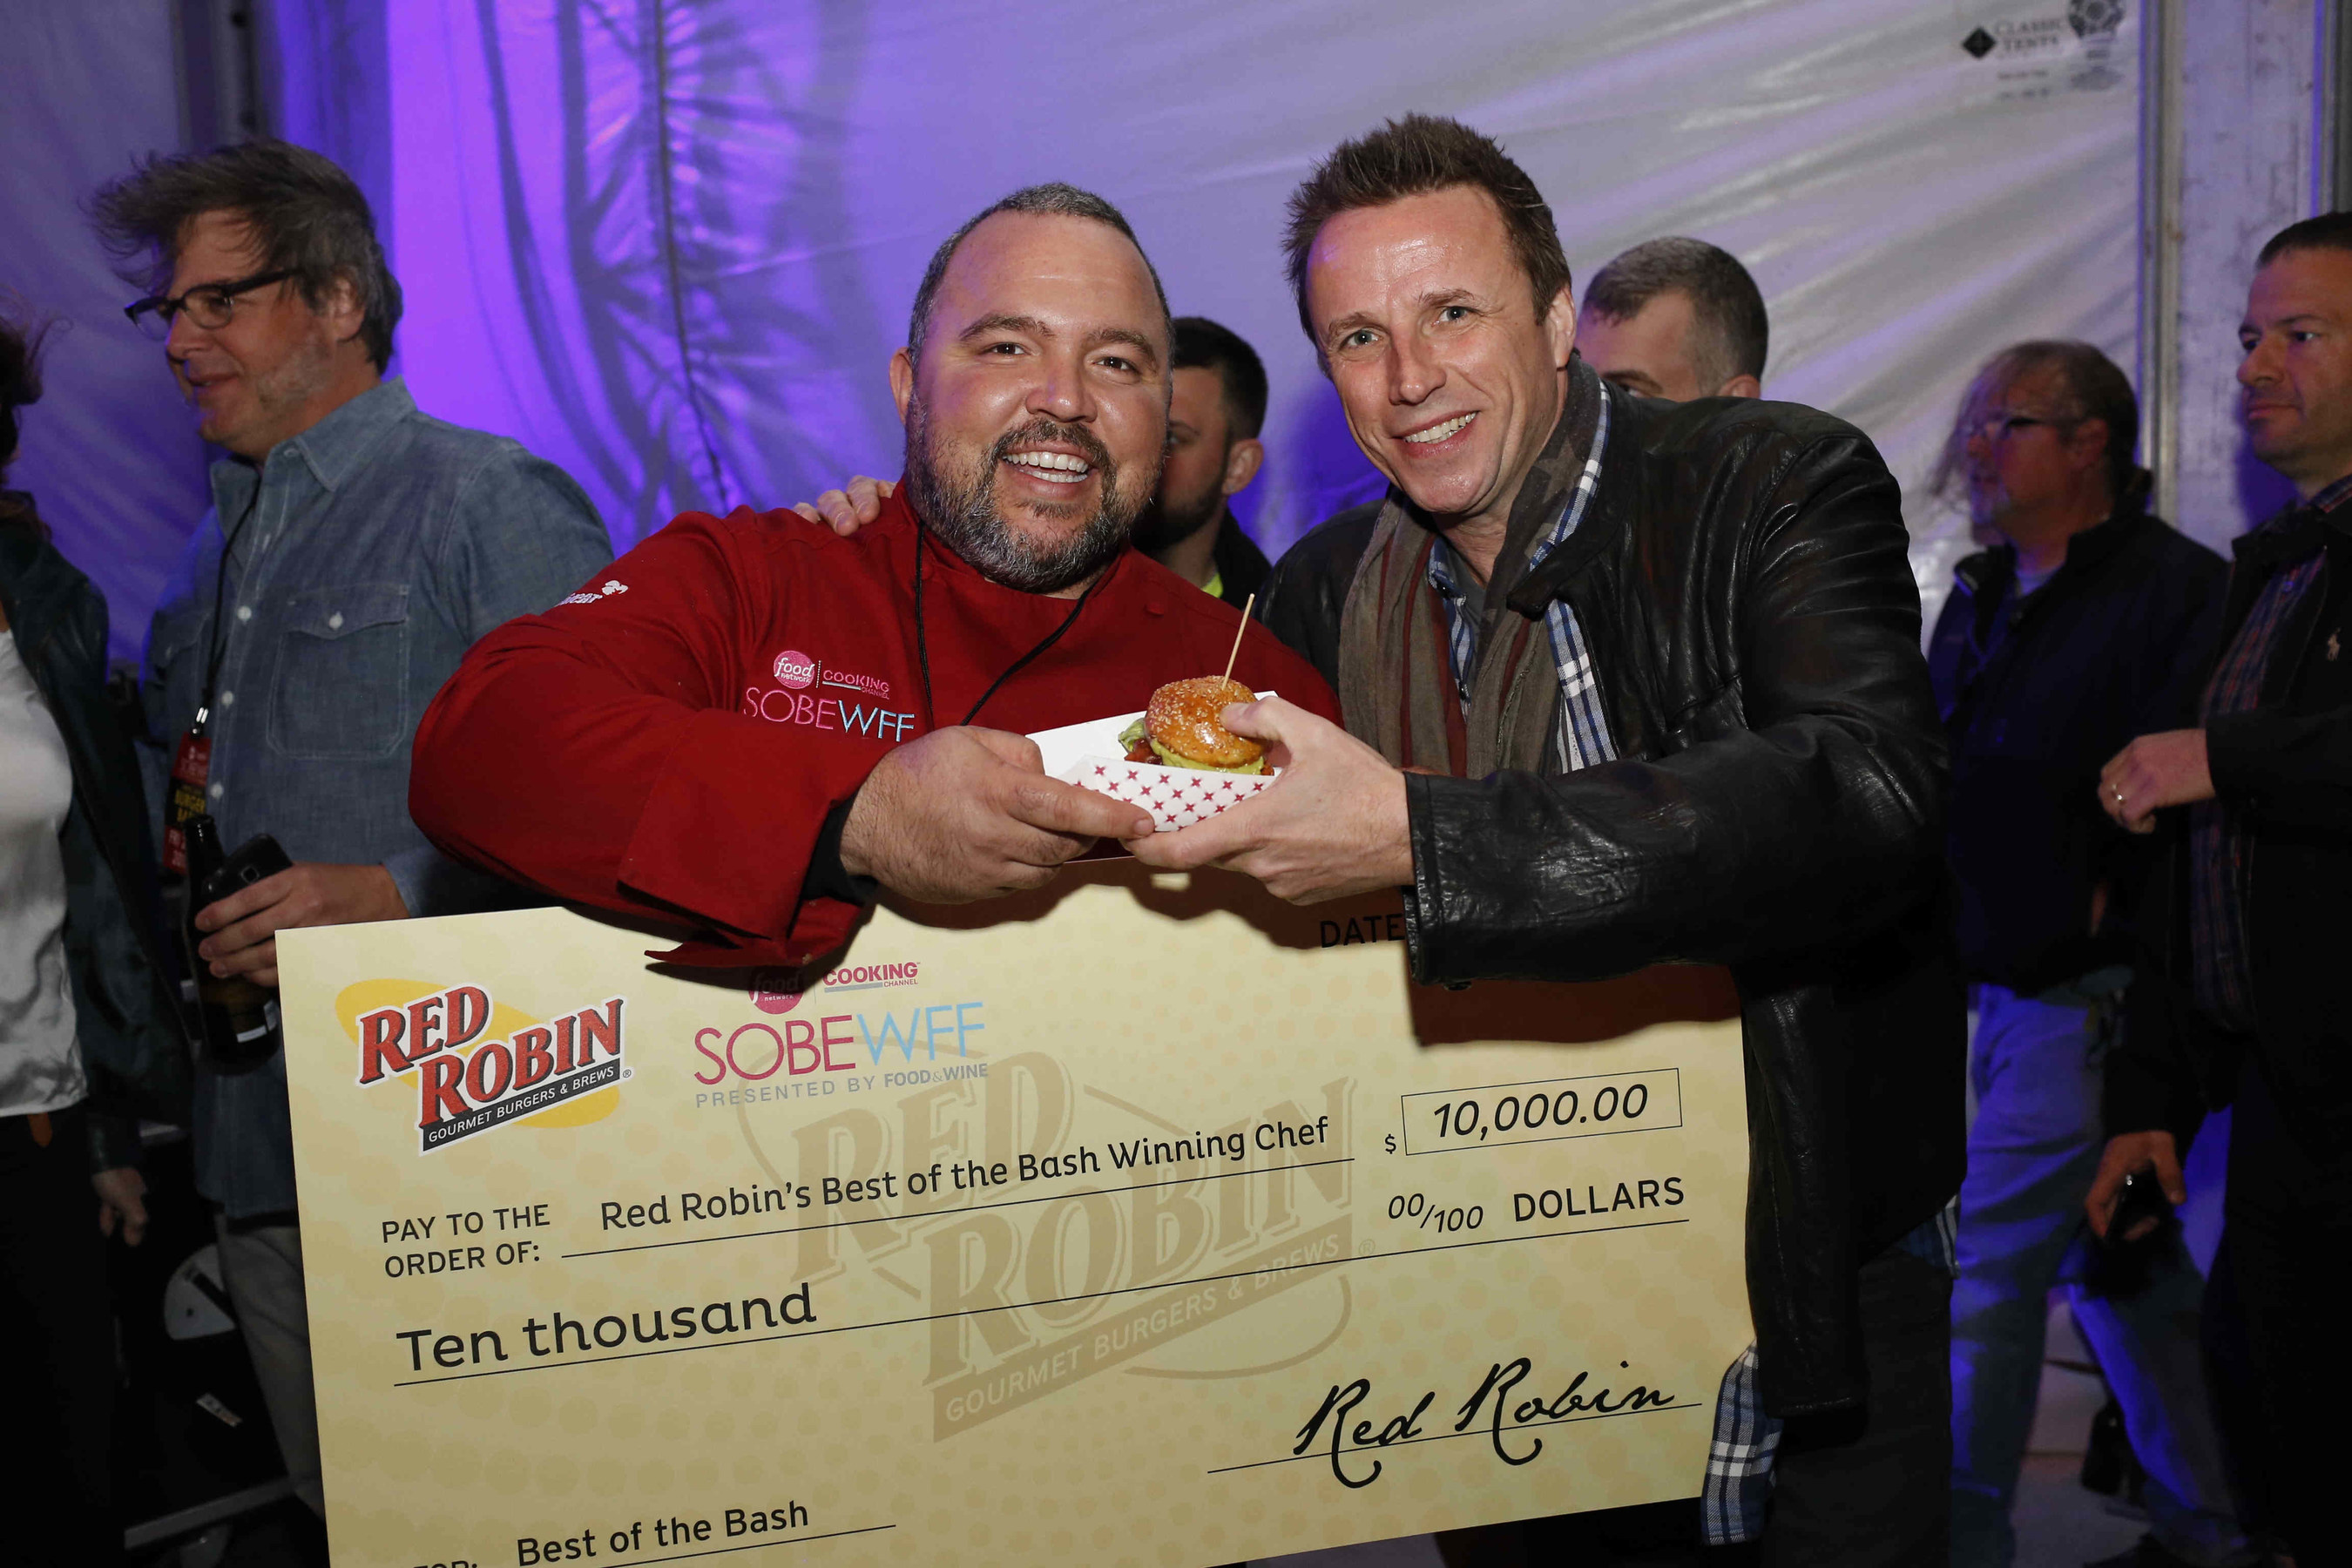 Chef Michell Sanchez's Madlove Champ Burger Delights Judges' Taste Buds, Wins Red Robin's Best of the Bash Award at the Amstel Light Burger Bash